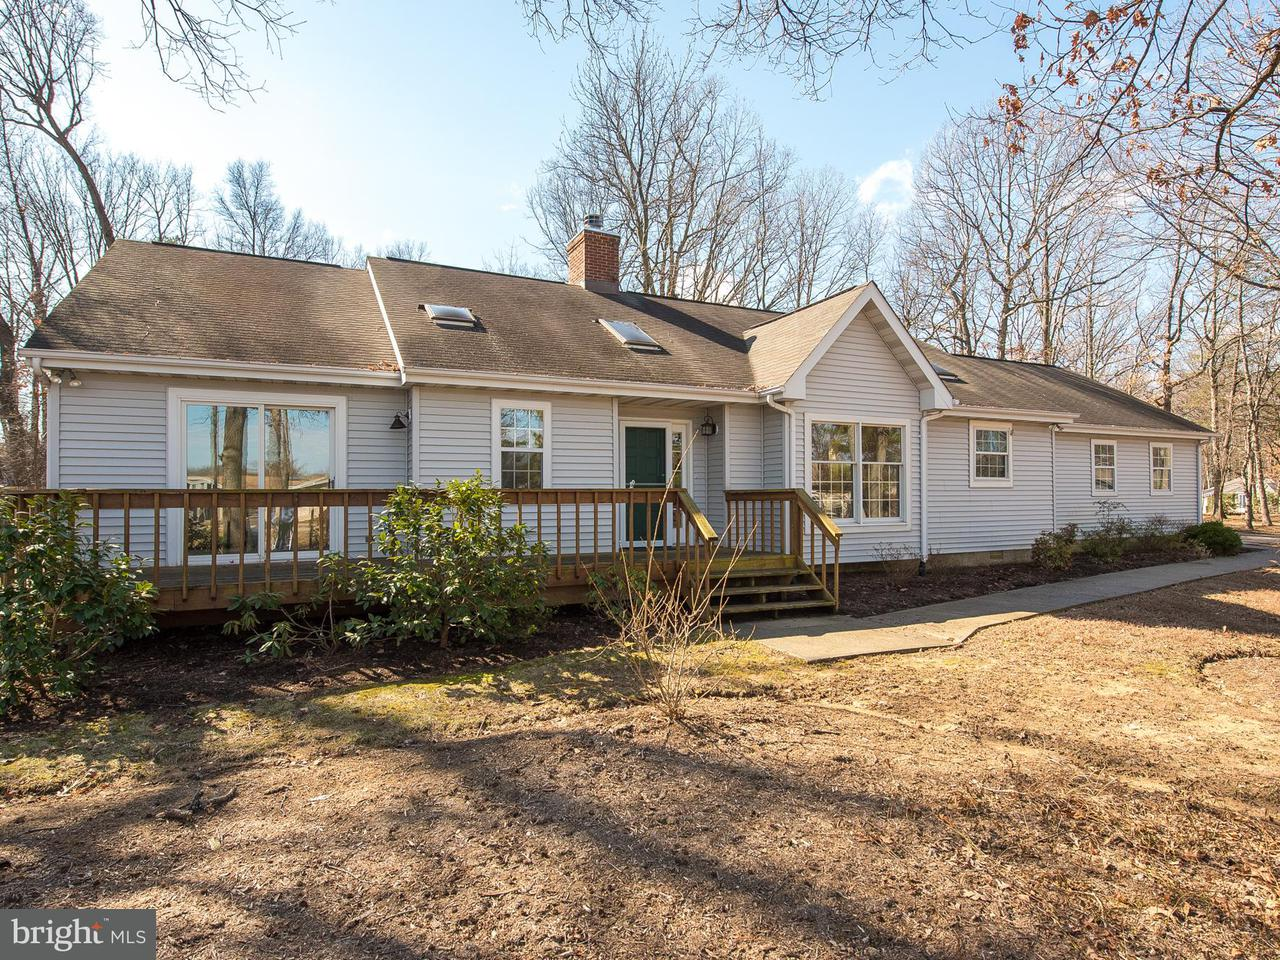 Single Family Home for Sale at 1511 Gordon Cove Drive 1511 Gordon Cove Drive Annapolis, Maryland 21403 United States